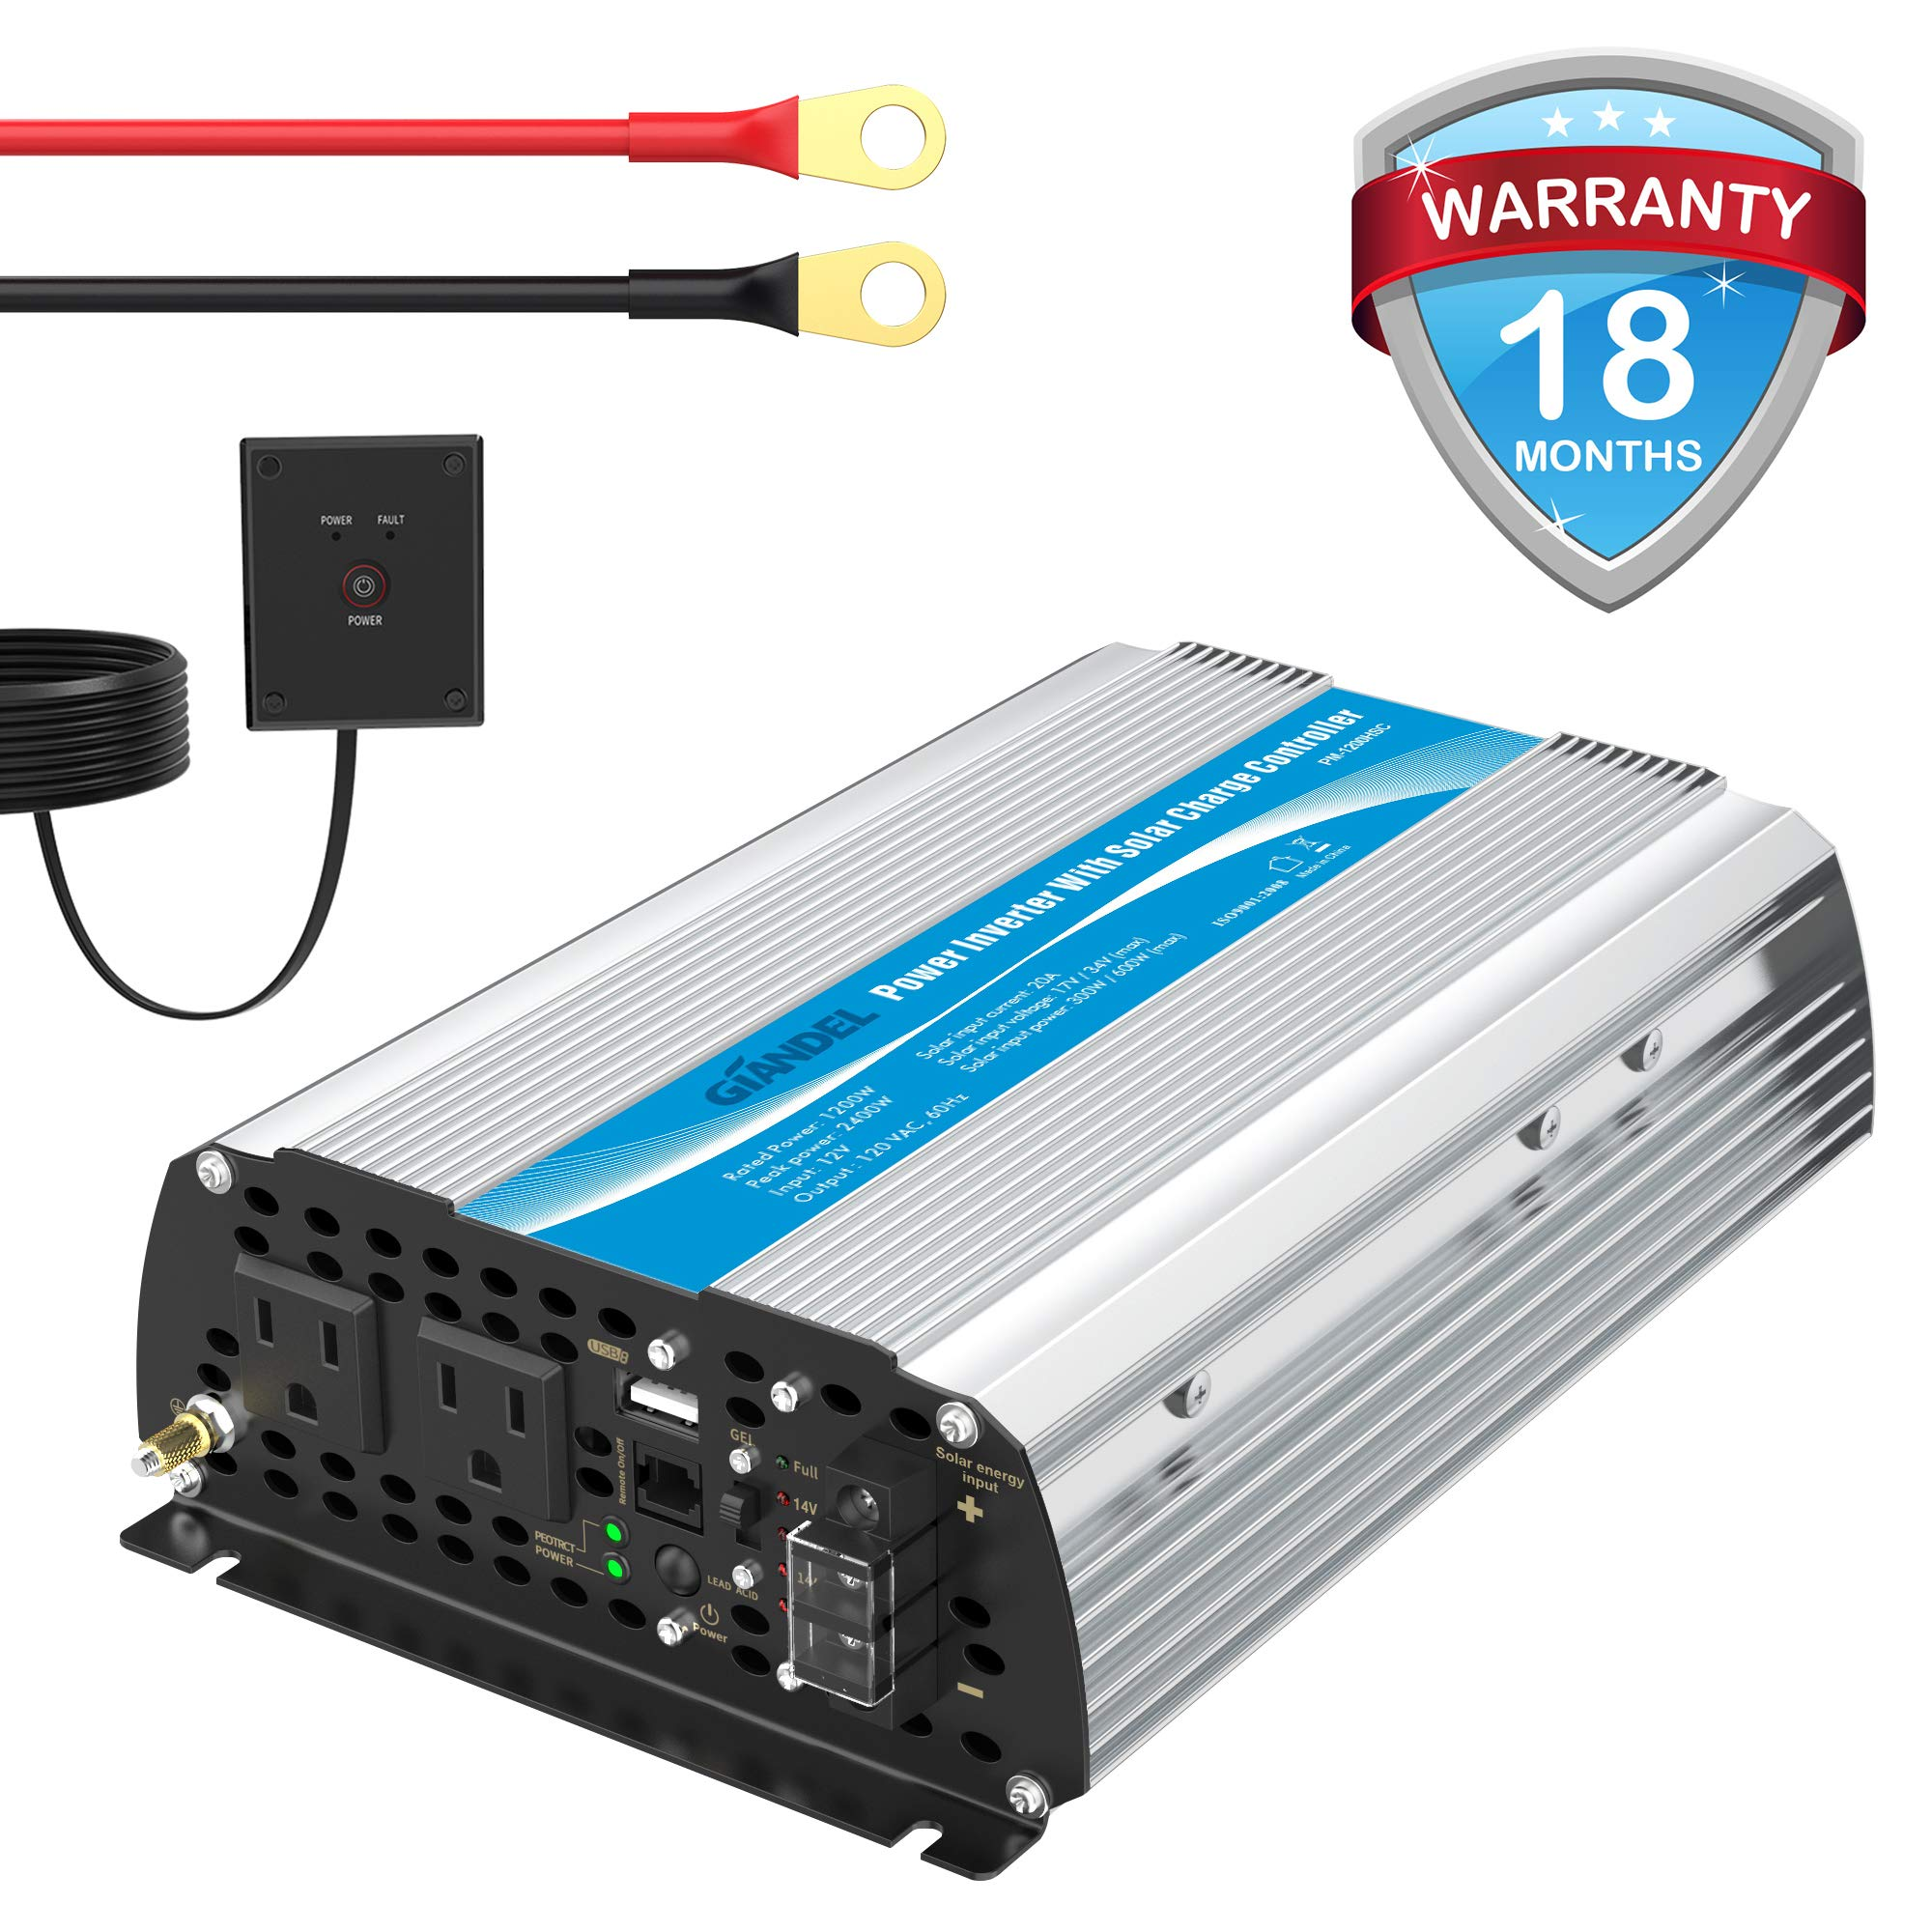 1200W Power Inverter DC12 Volt to AC 120 Volt with 20A Solar Charge Controller and Remote Control & USB Port for RV Truck Solar System by GIANDEL